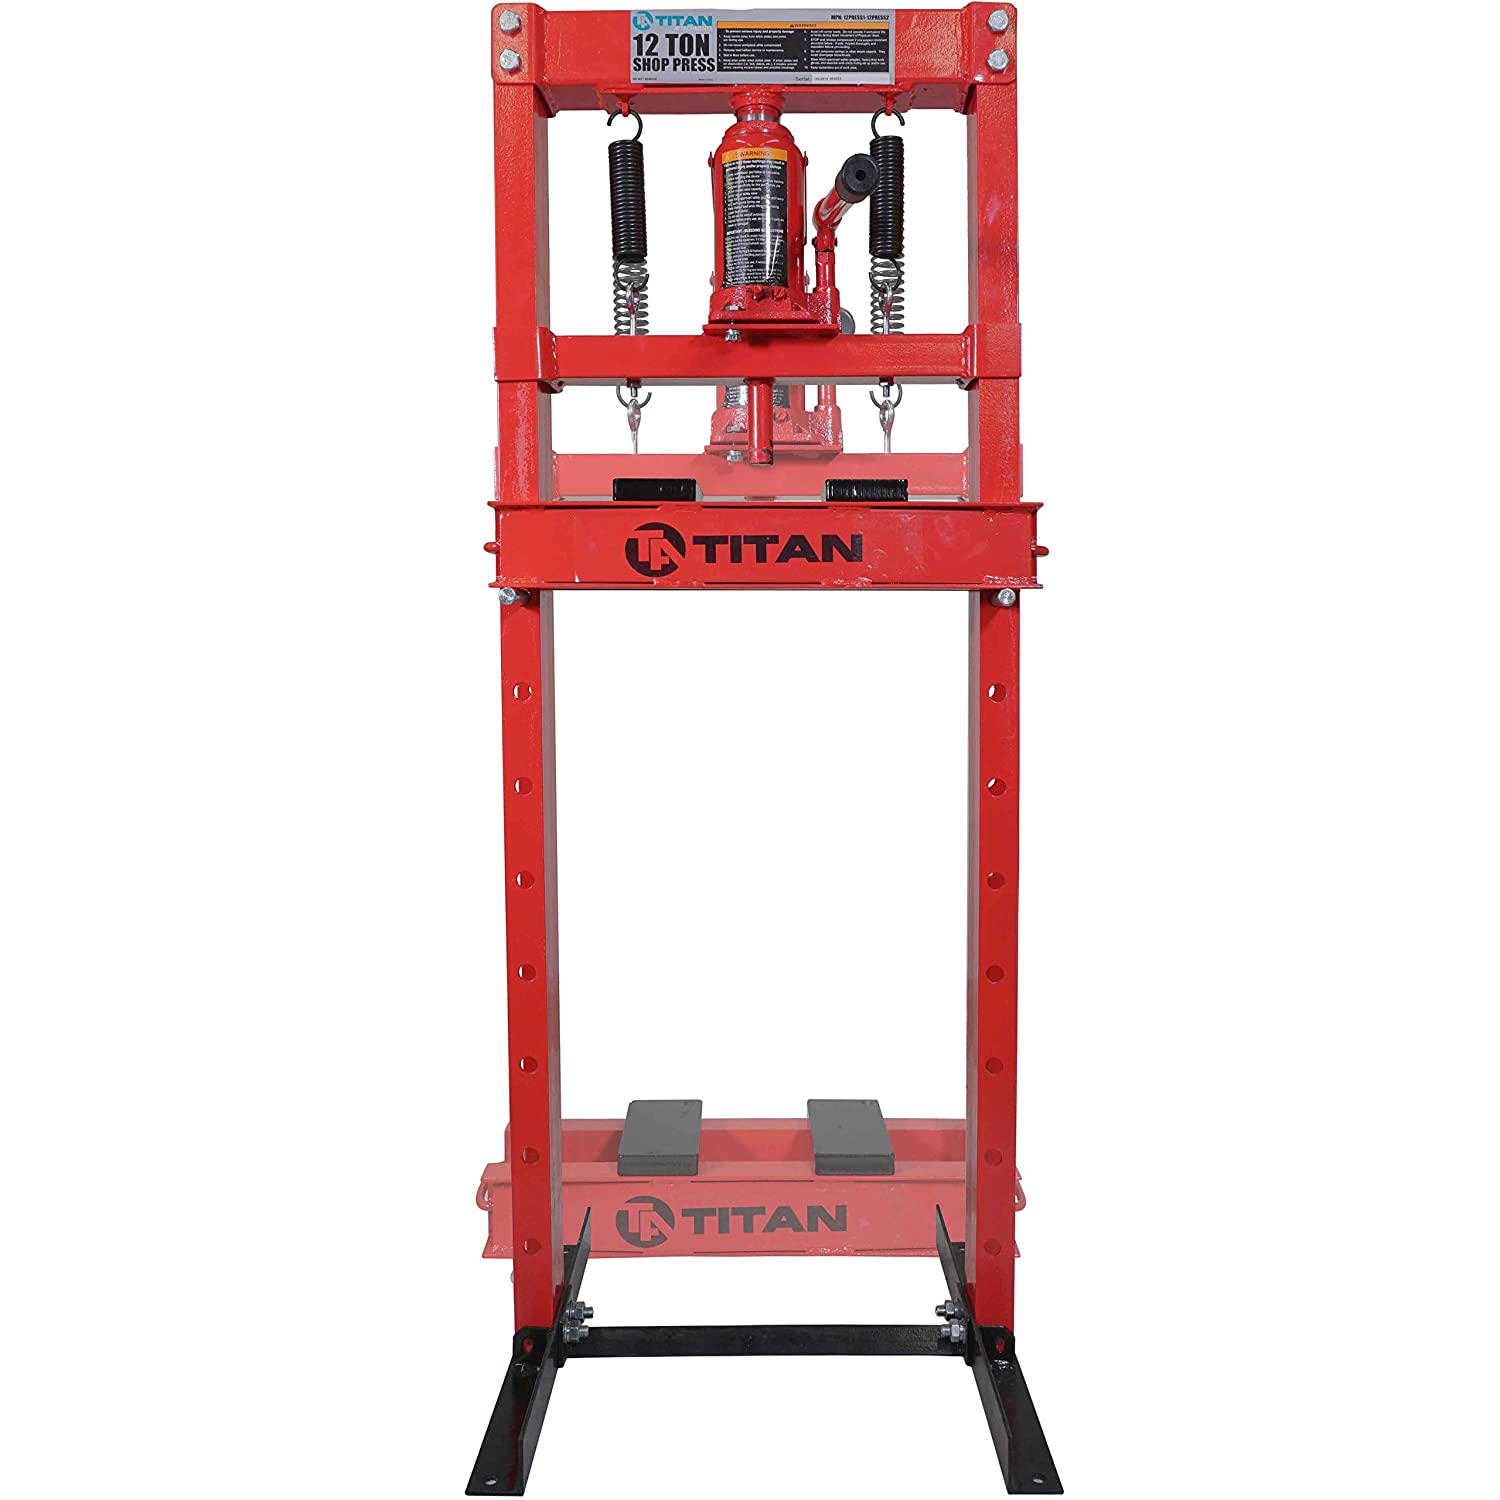 Latest Collection Of Hydraulic Jack Stand 12 Ton H-frame Shop Press Heavy Duty Springs Loaded Stands Attractive And Durable Business & Industrial